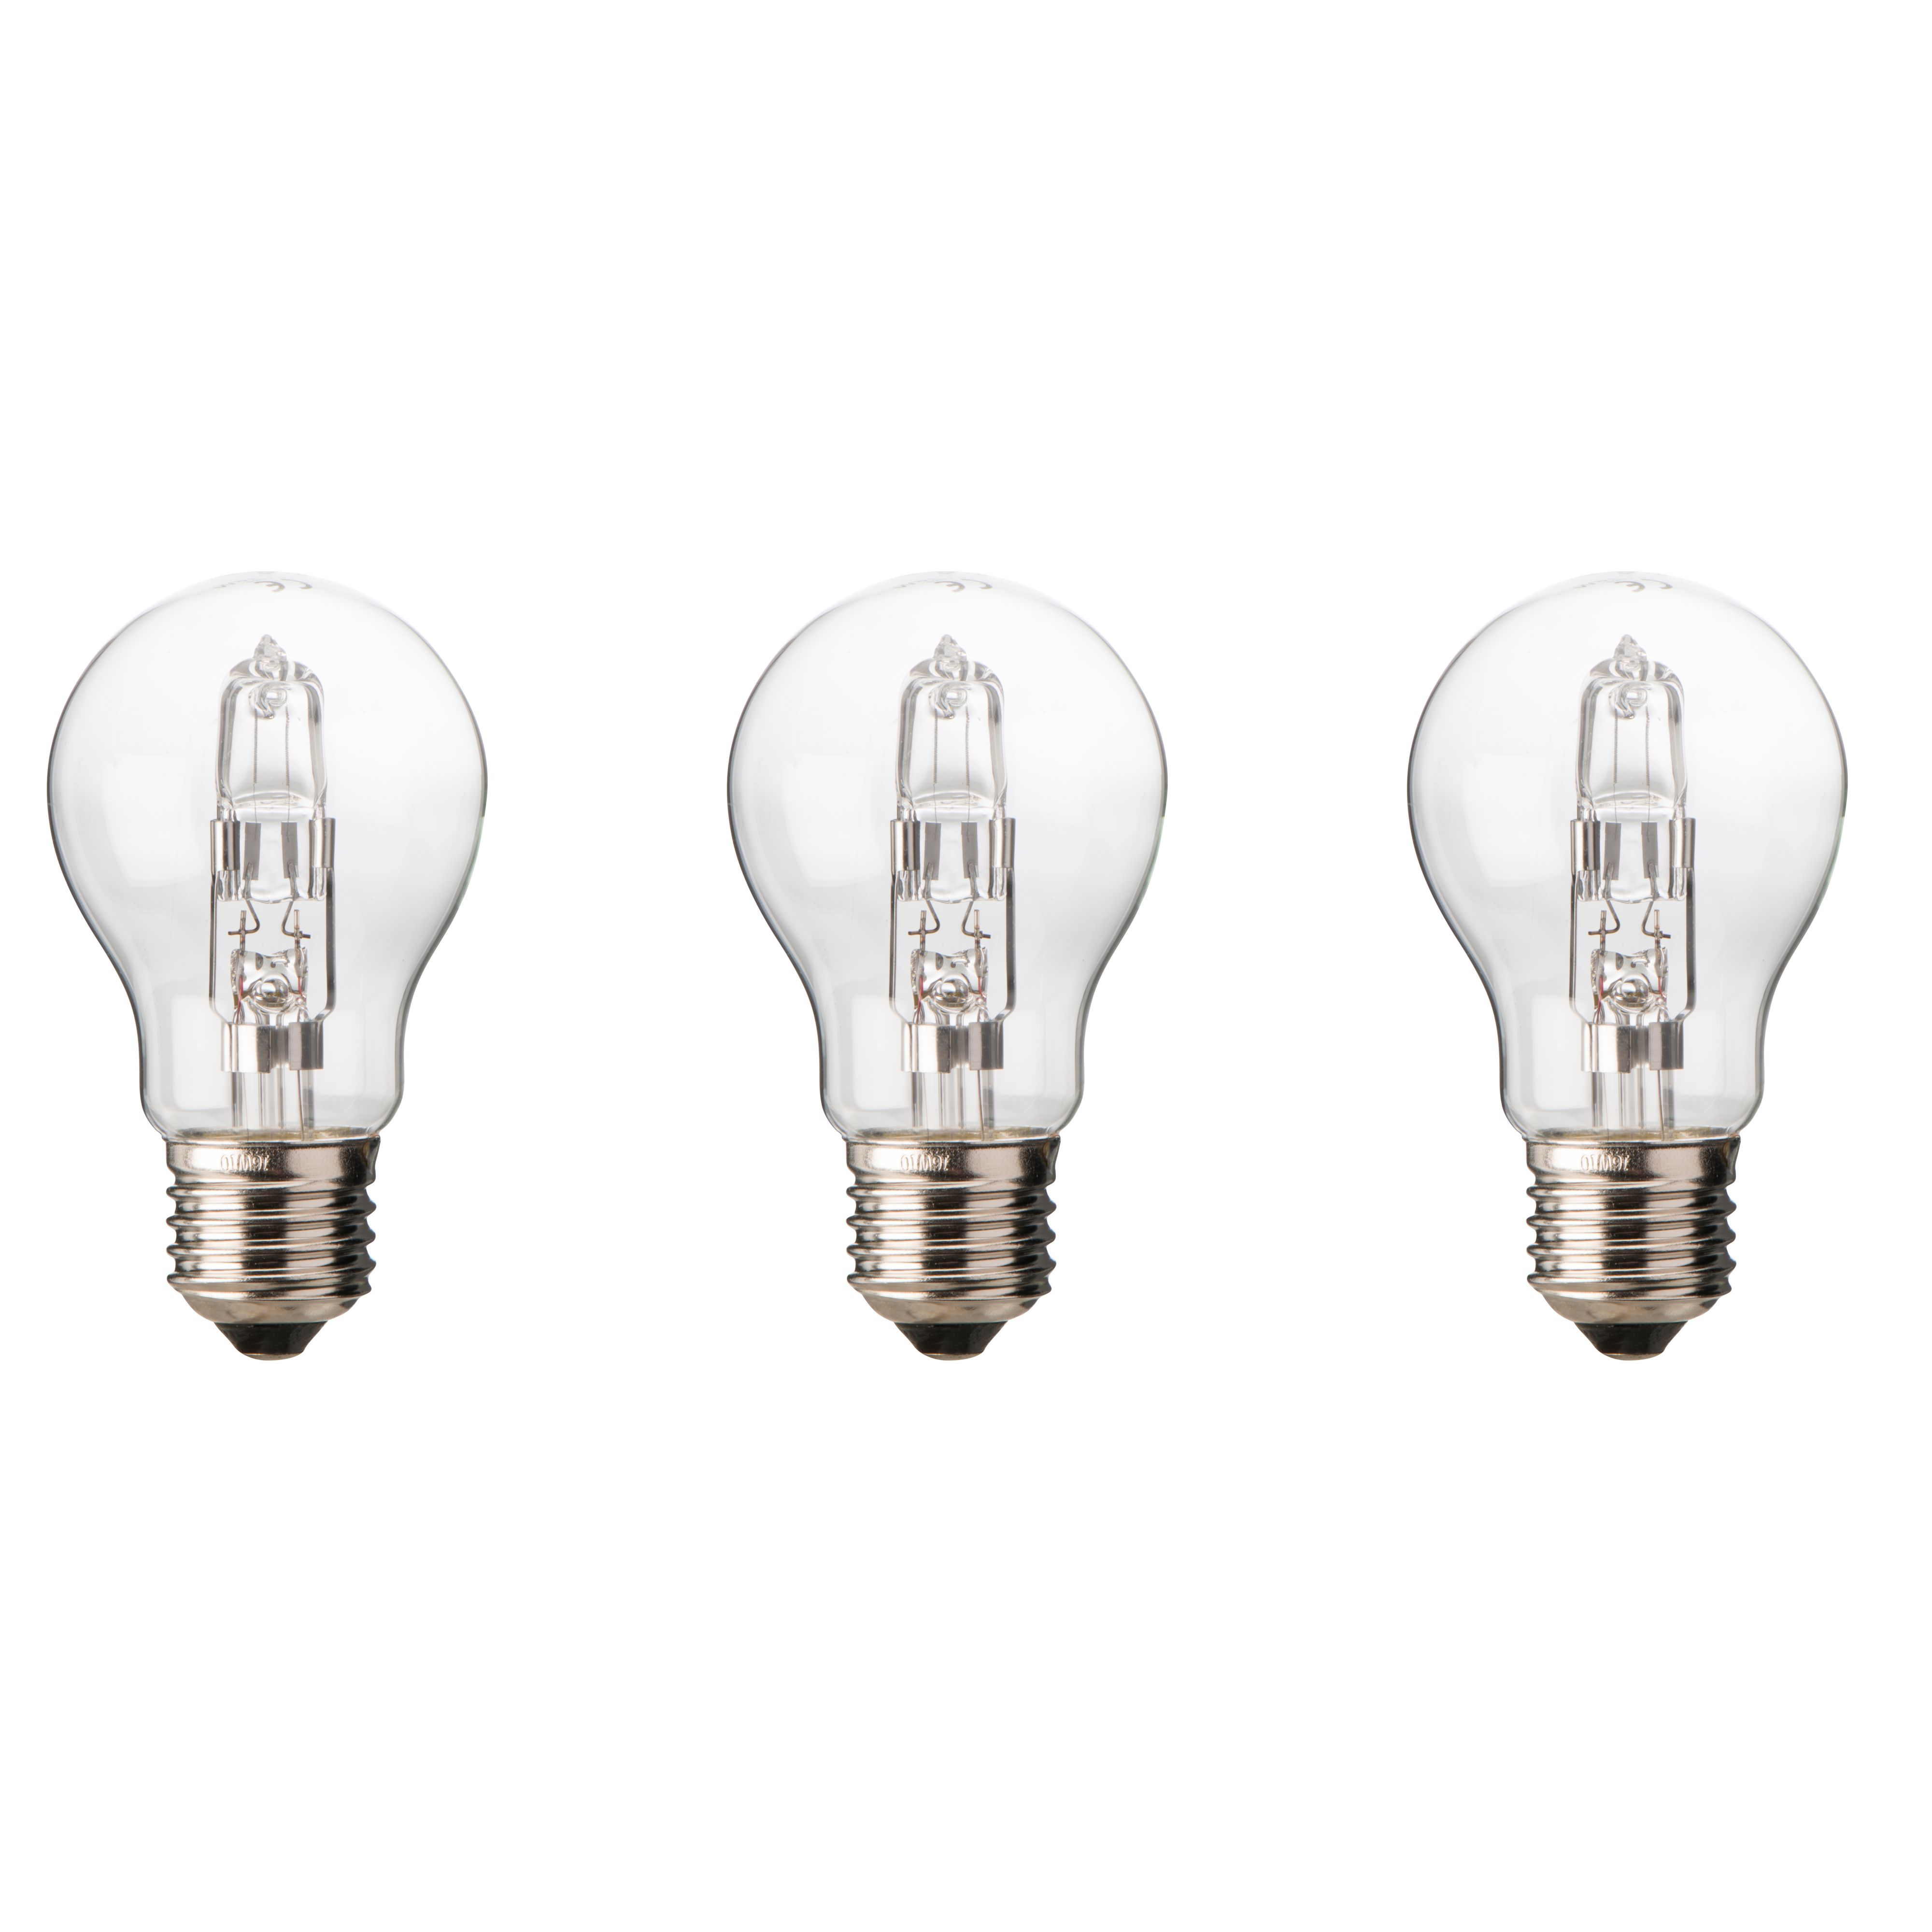 Diall E W Halogen Dimmable Classic Light Bulb Pack of 3